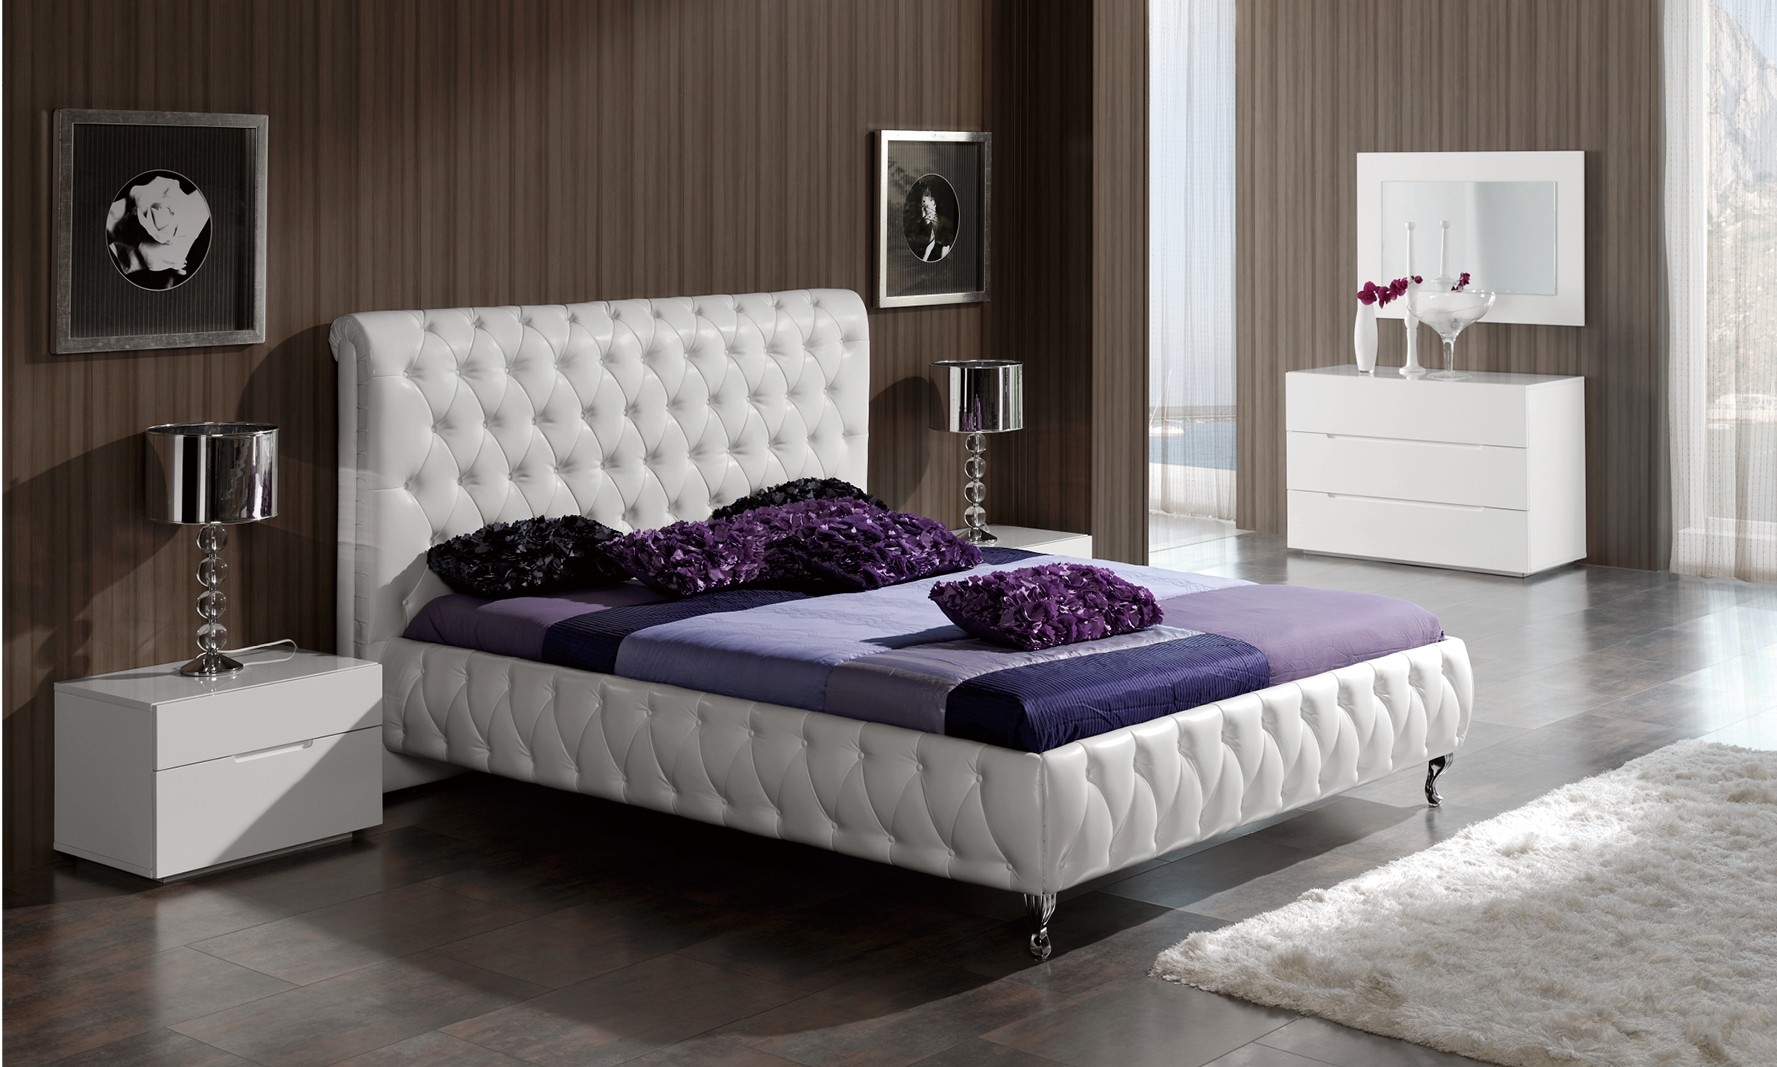 Cheap Bedroom Sets For Sale Modern And Contemporary European Bedroom Sets Suitable